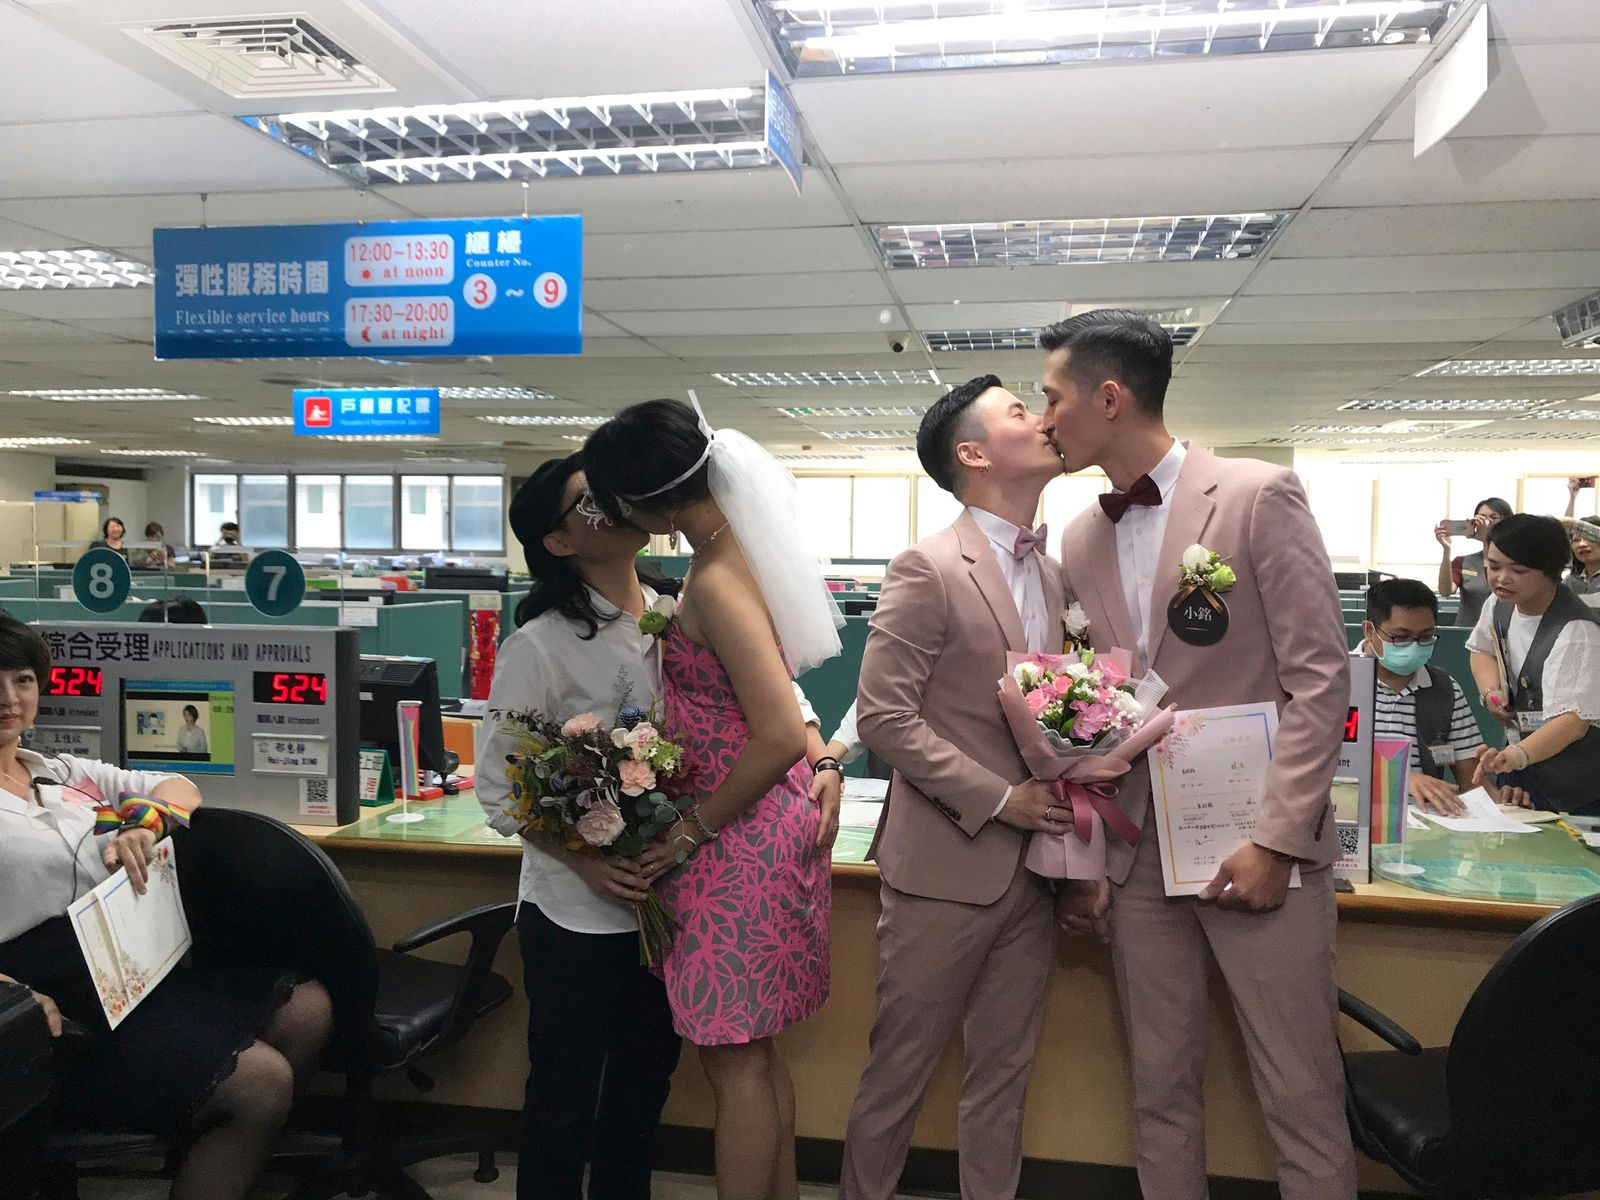 Two same-sex couple seal their legal marriages with a kiss at the registration office in Xingyi District in Taipei, Taiwan, Friday, May 24, 2019. Hundreds of same-sex couples in Taiwan are rushing to the household registration office on the first day that a landmark decision to legalize same-sex marriage has taken effect. (AP Photo/Johnson Lai)